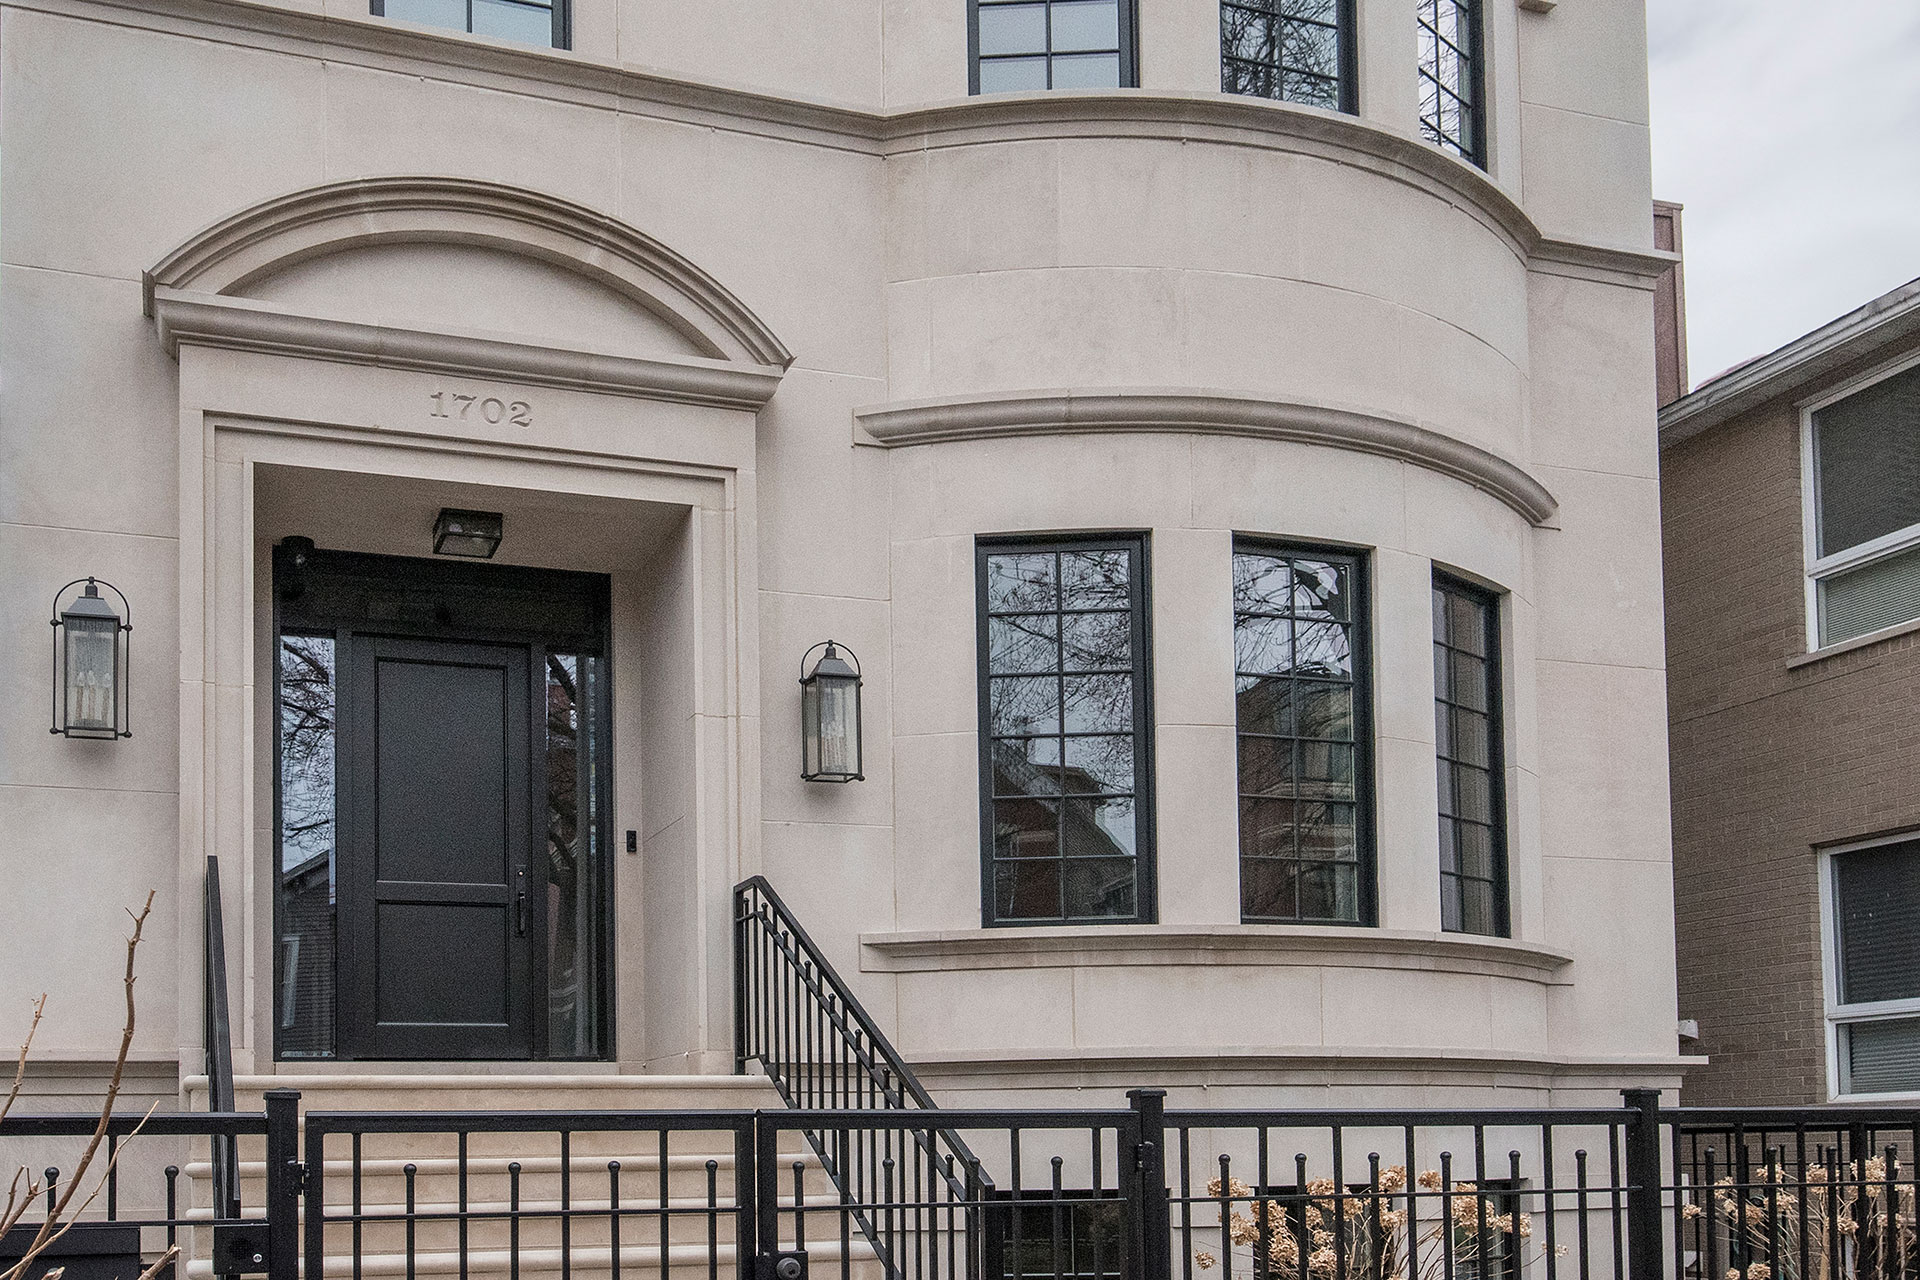 Transitional Mahogany Wood Front Door with Espresso Finish – 1702 N Burling  St., Chicago